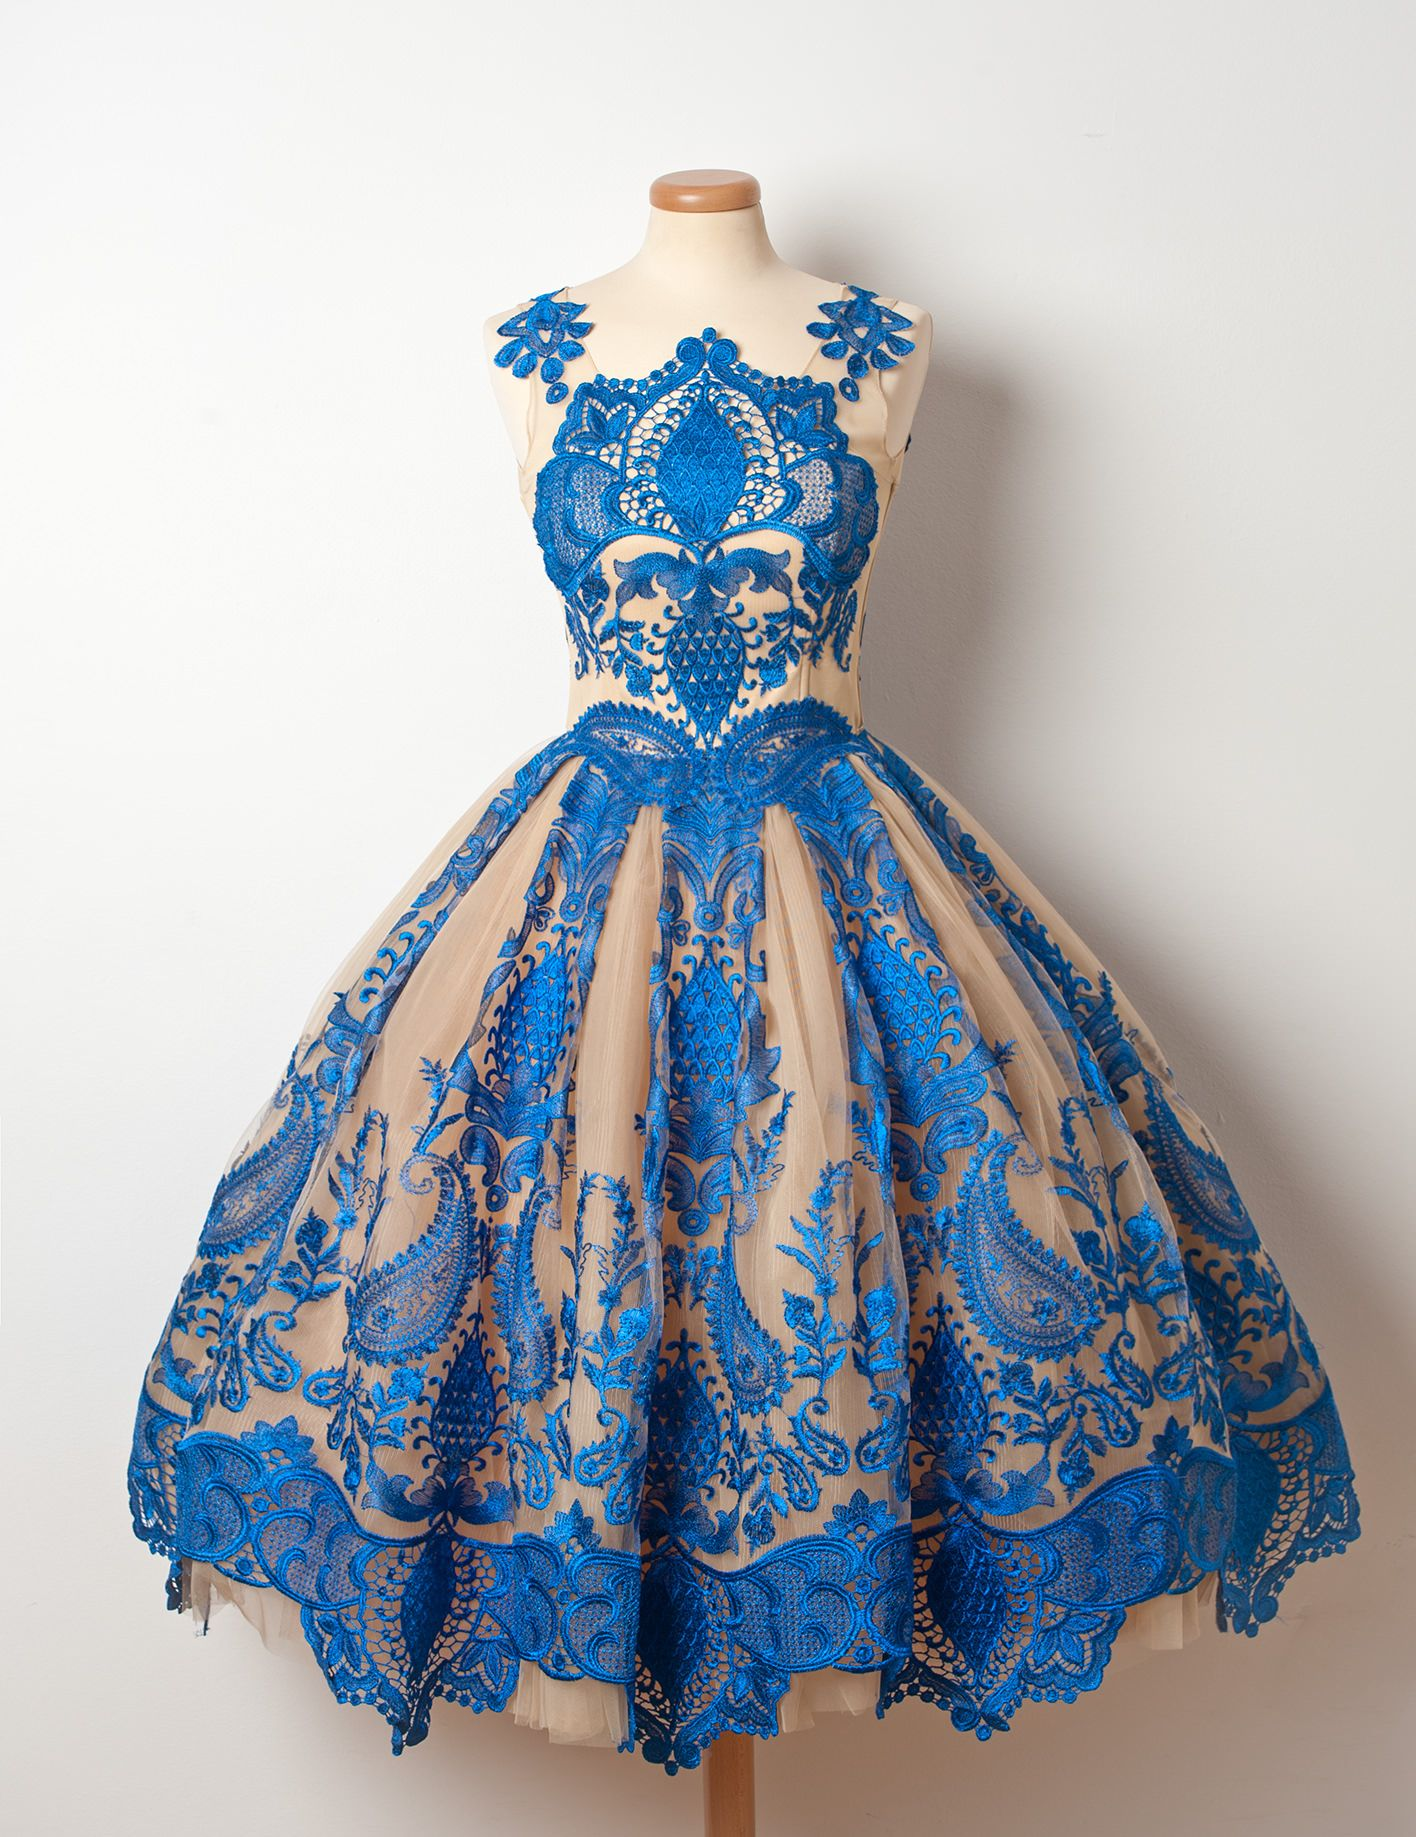 A sweet u sour fancy dessert with extravagant blue lace topping add